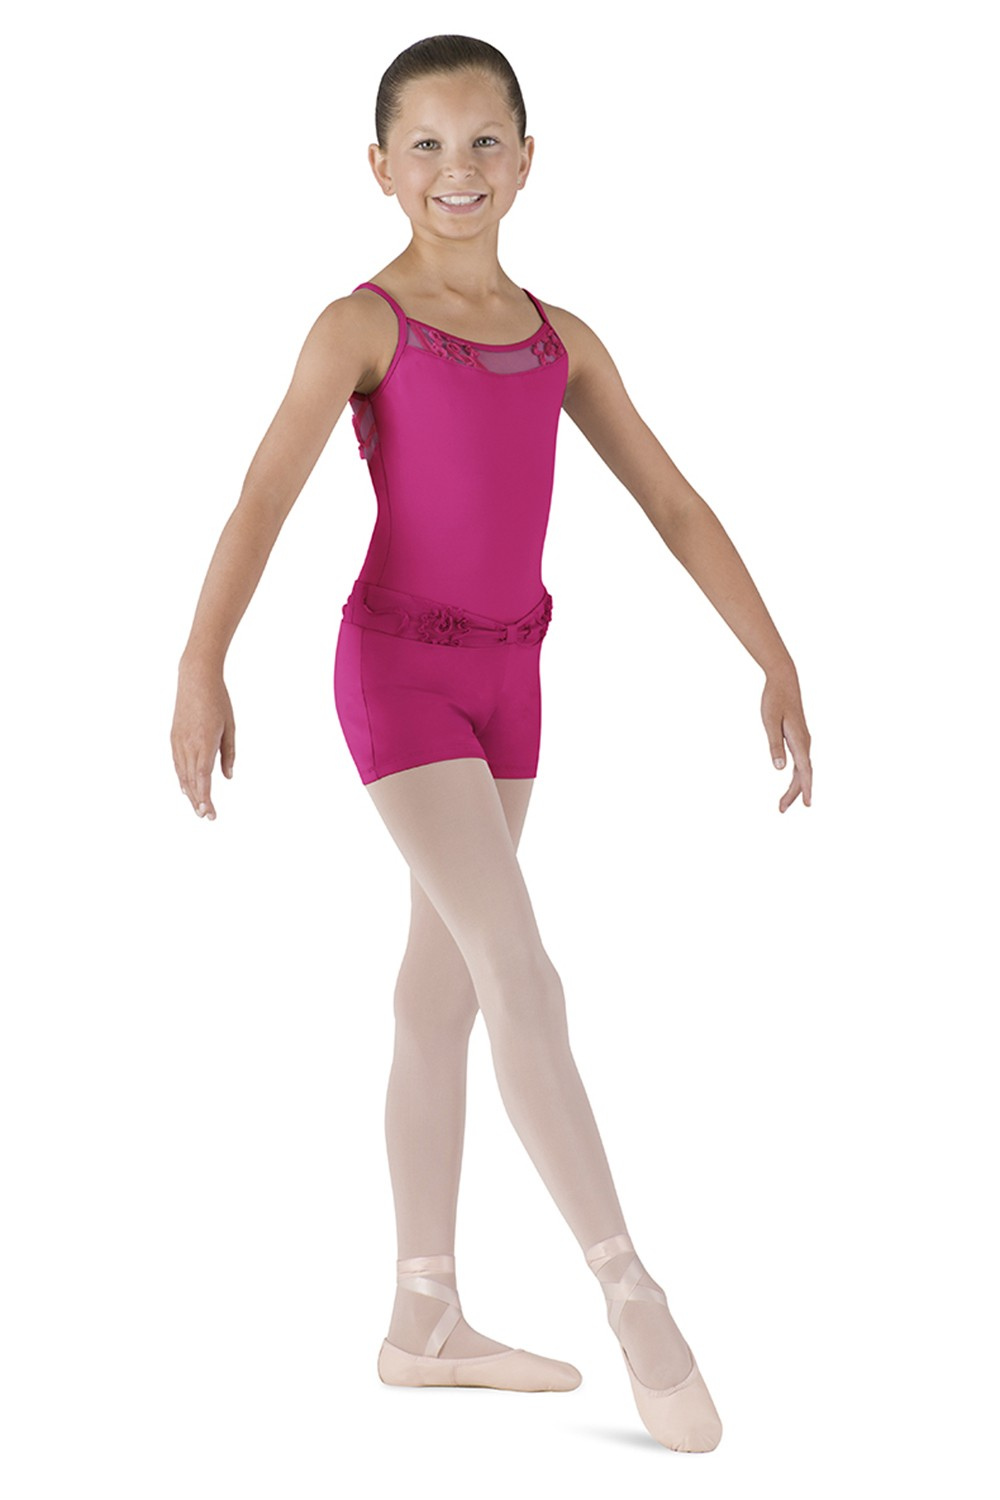 Childrens Leotard Children's Dance Leotards